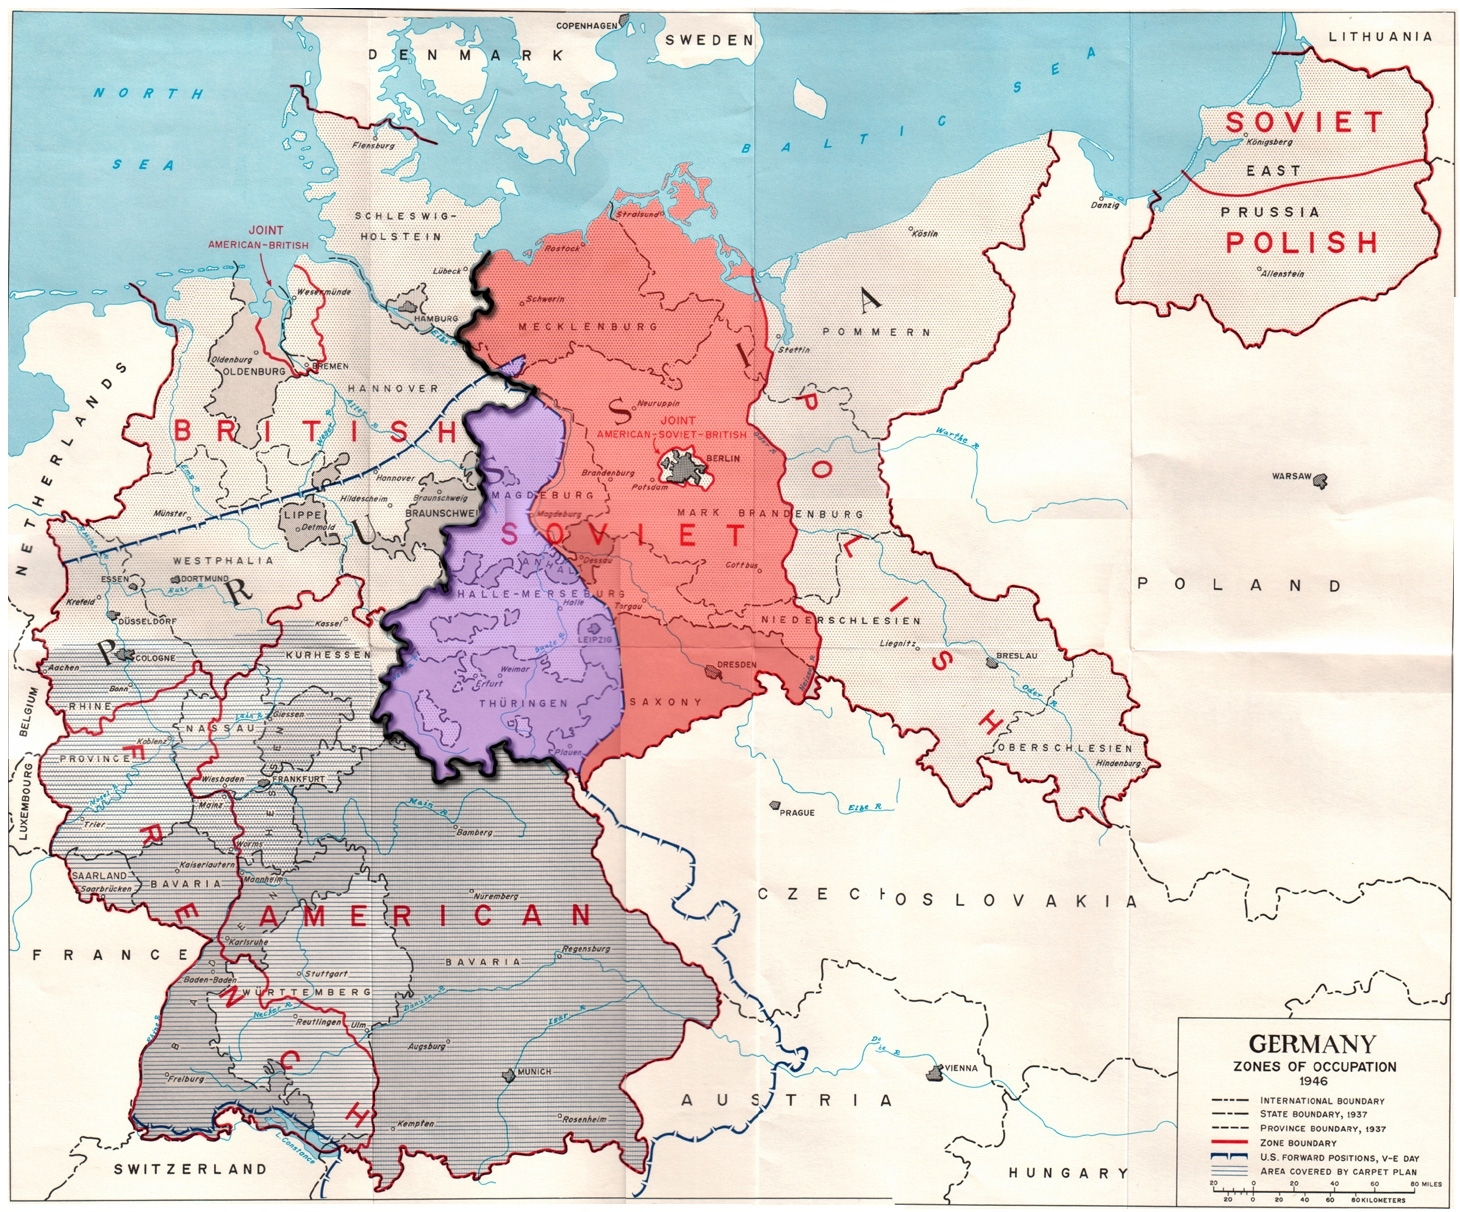 Who Divided Germany During The Cold War - Washington Or Moscow? within Map Of Divided Germany During The Cold War